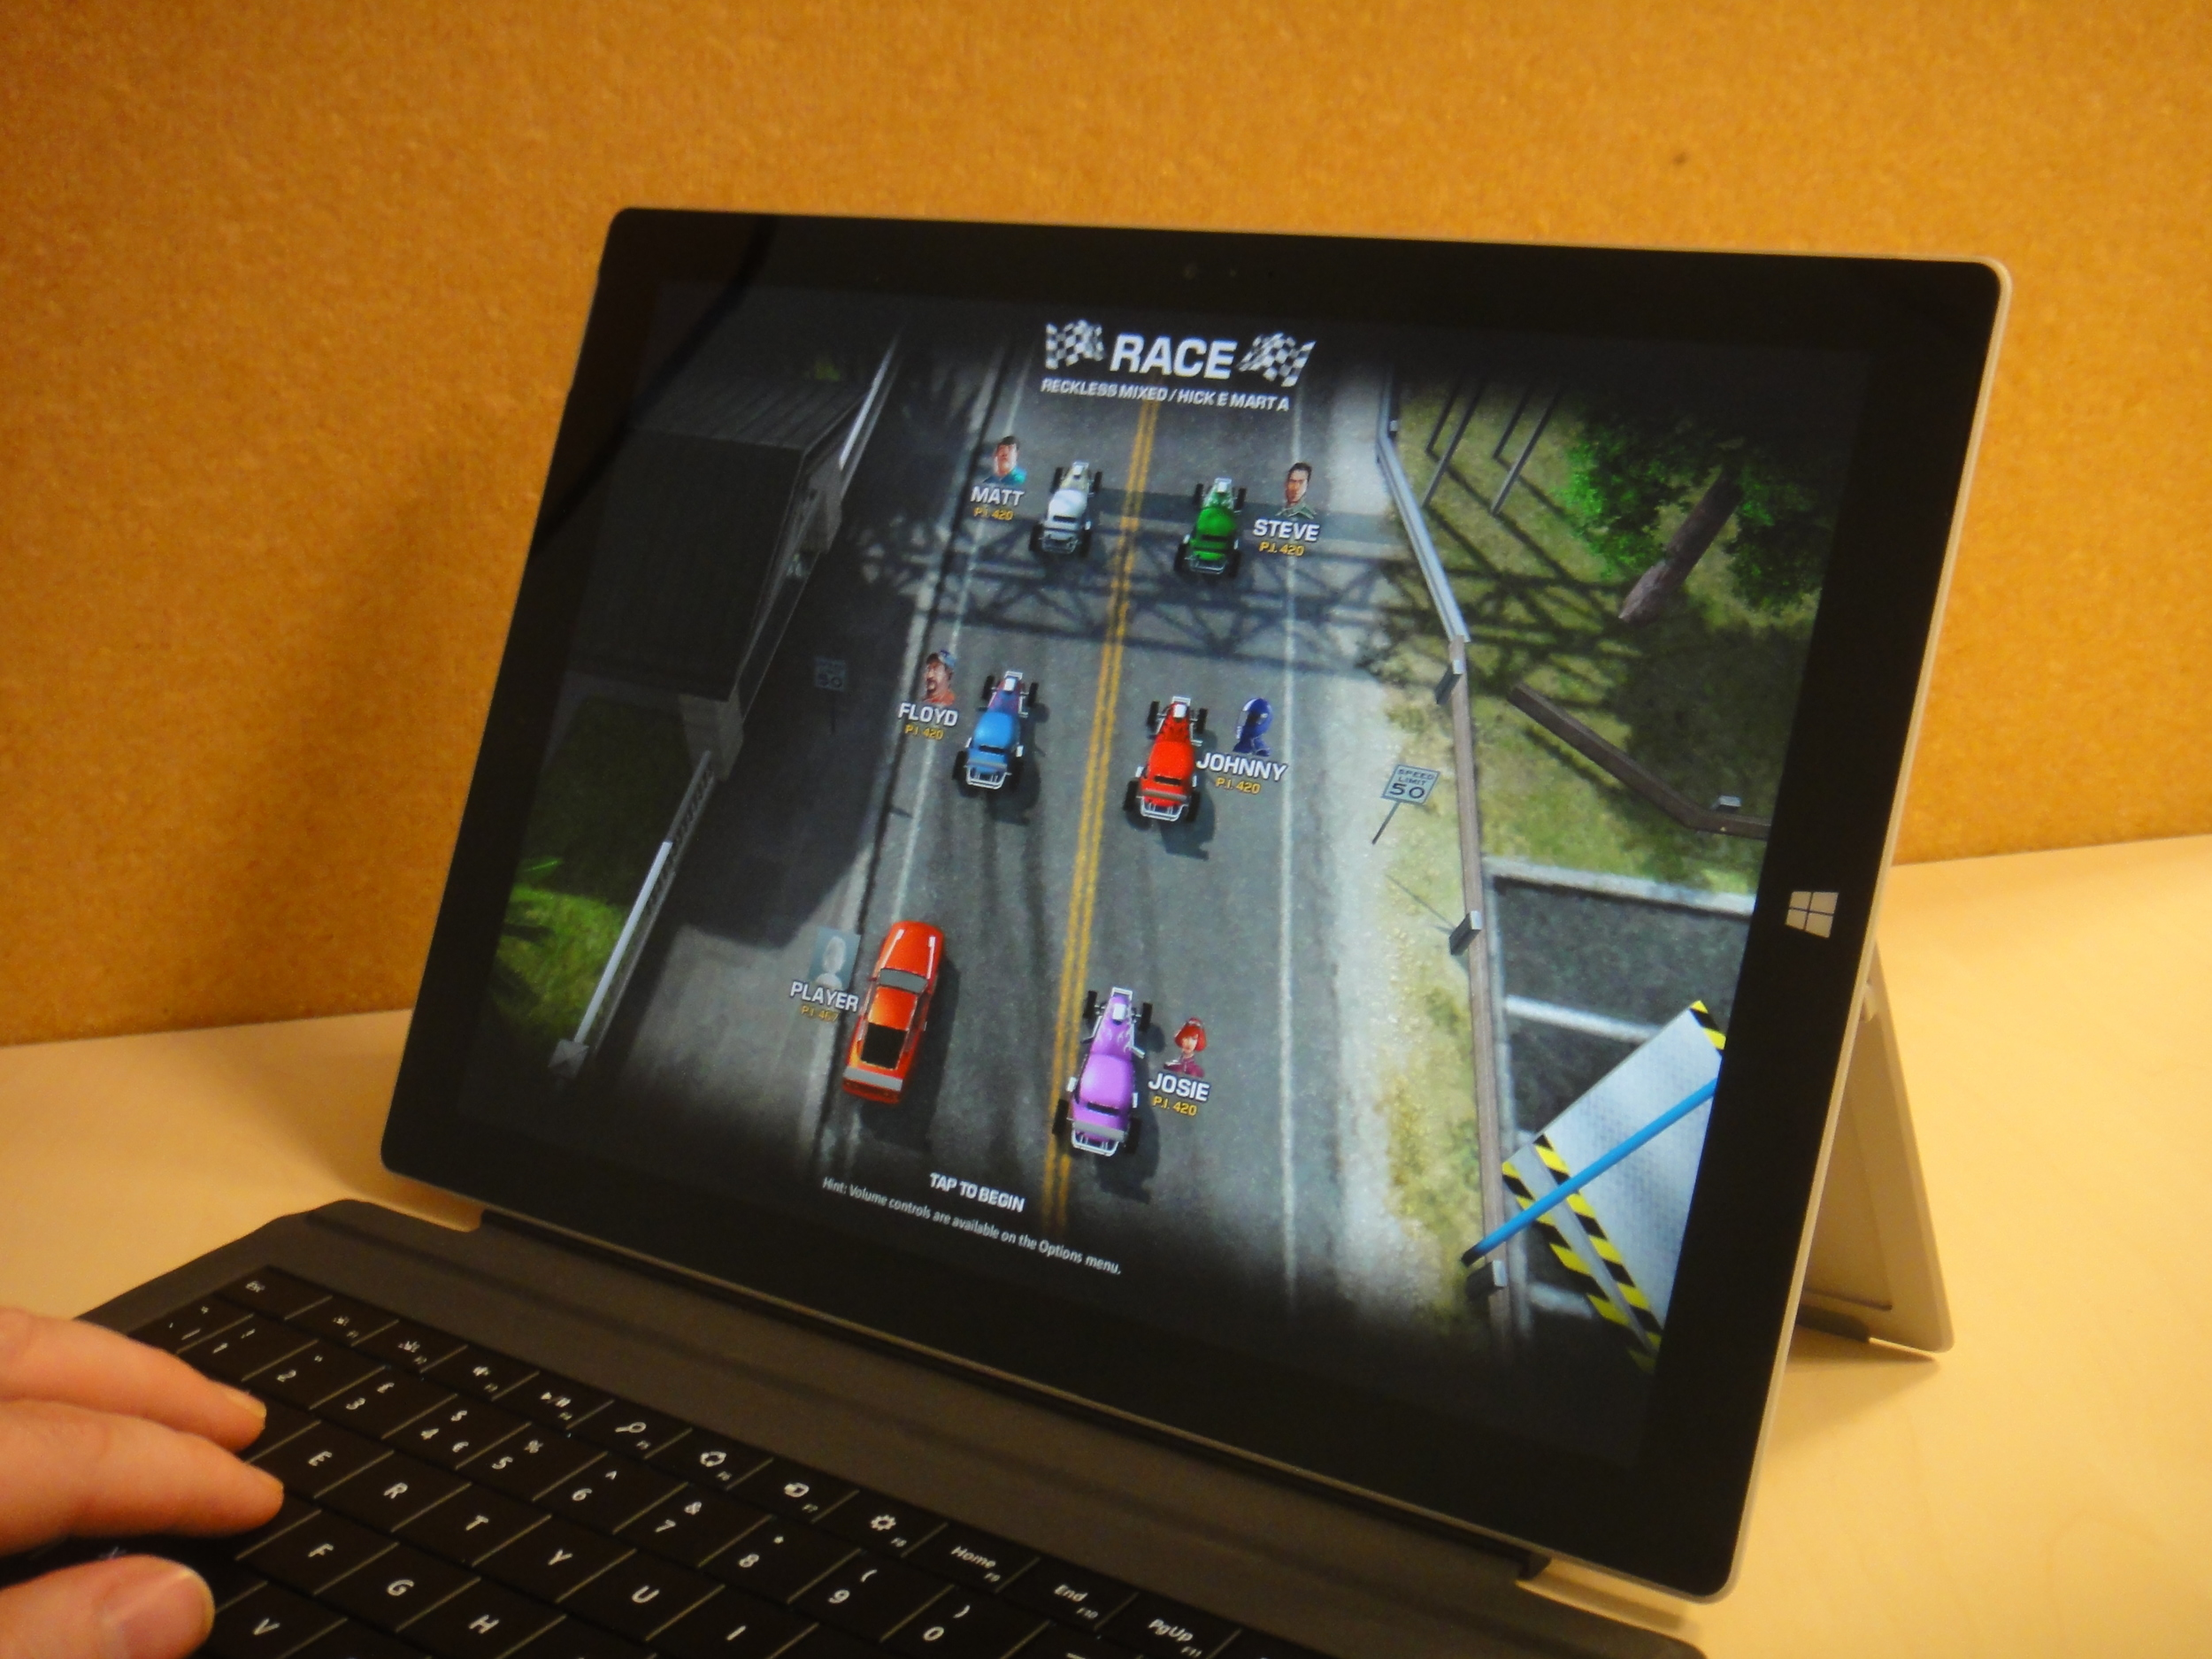 Top-down racer Reckless Racing includes online multiplayer